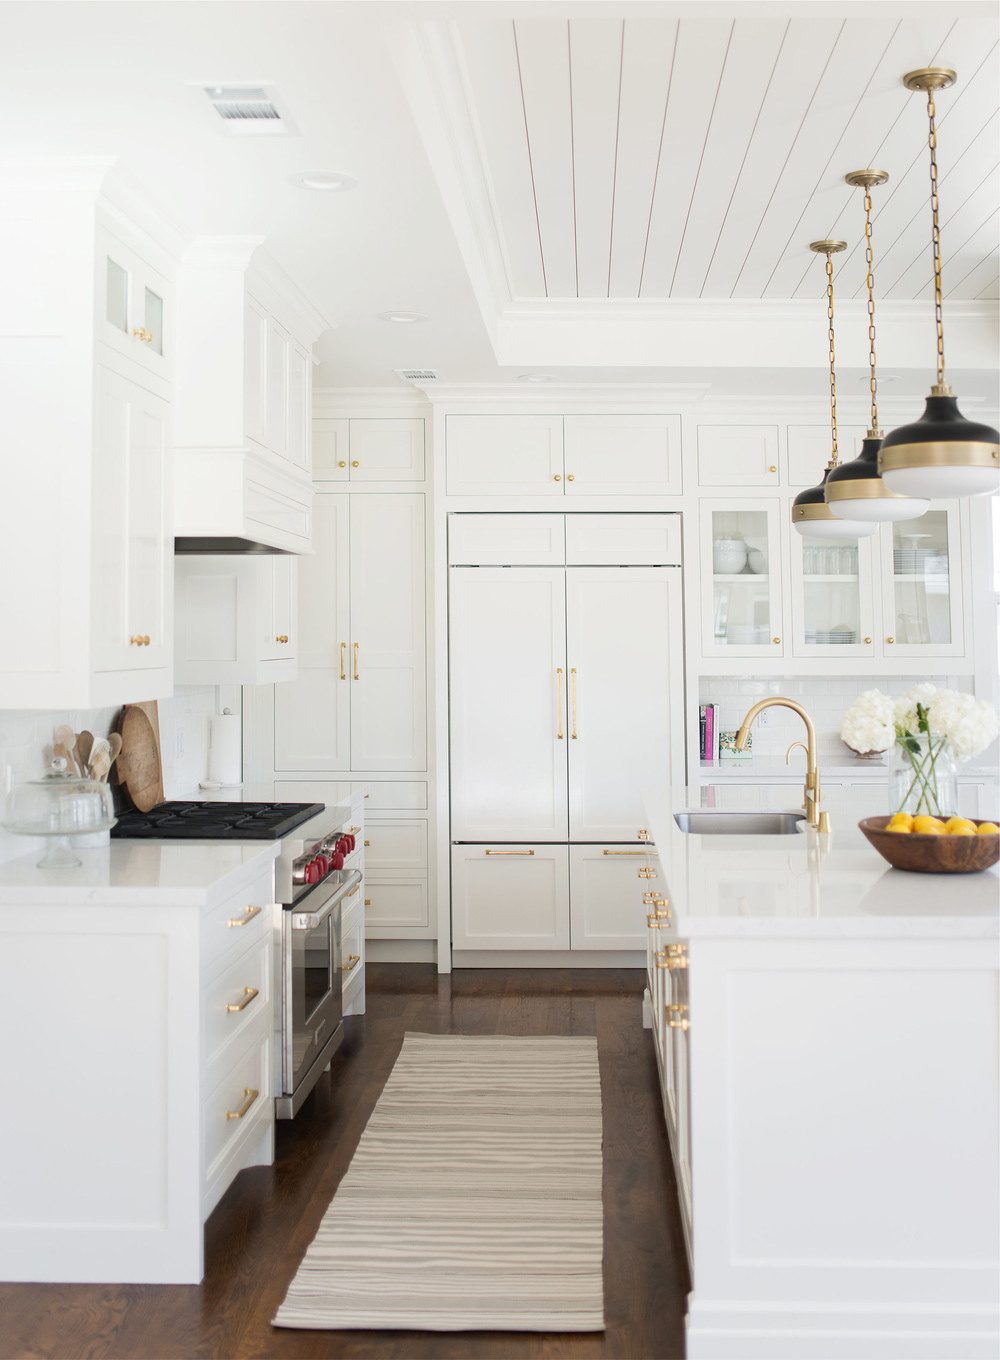 Uncategorized Kitchen Design Studio a real life e design studio mcgee white and gold kitchen by mcgee